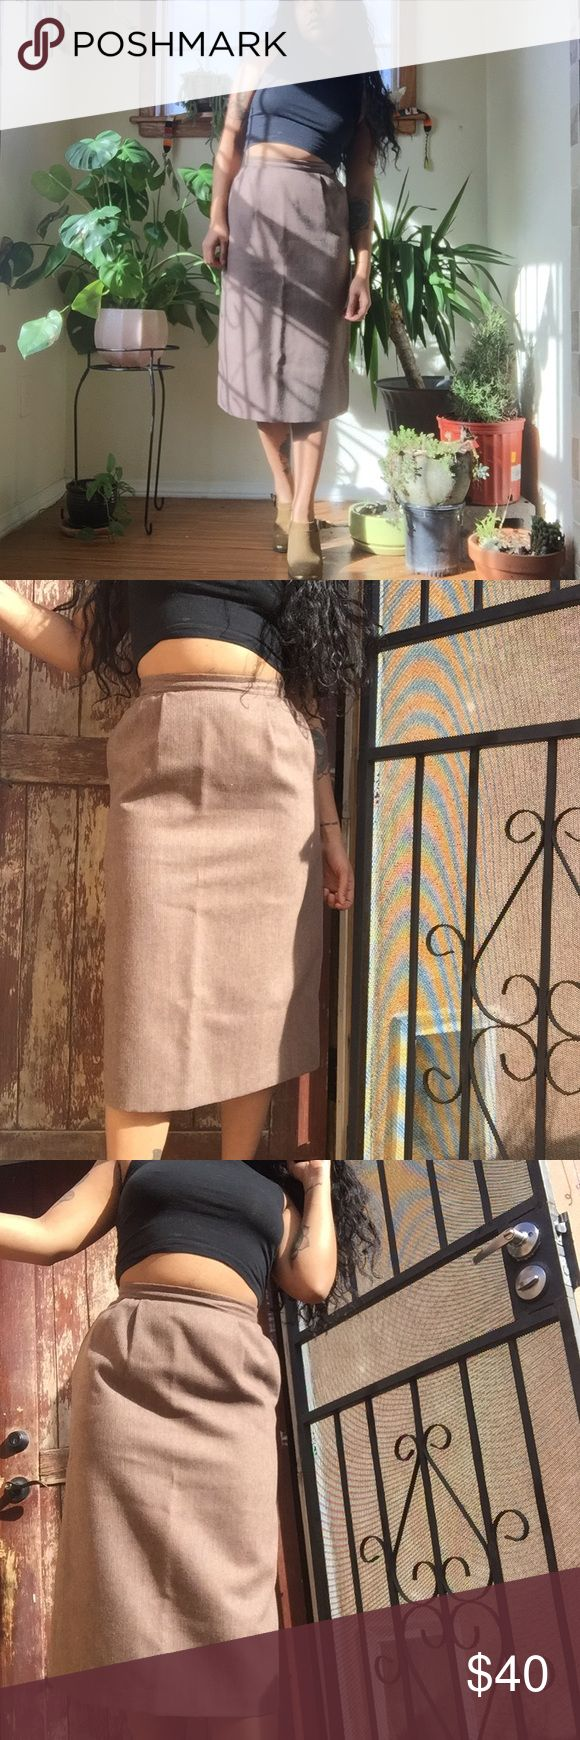 """Vintage Wool Pencil Skirt ✋🏿made in USA  ✋🏿zipper and hook closure at the center of the back ✋🏿two side slit pockets ✋🏿fully lined ✋🏿24"""" waist  ✋🏿high waist fit  ✋🏿midi length  ((The reformation, vintage, pin up, office, classic, 50s, Flynn skye, asos, madewell, feminine, amour Vert, dollskill, modcloth, garmentory, chanel, burberry)) Skirts Pencil"""